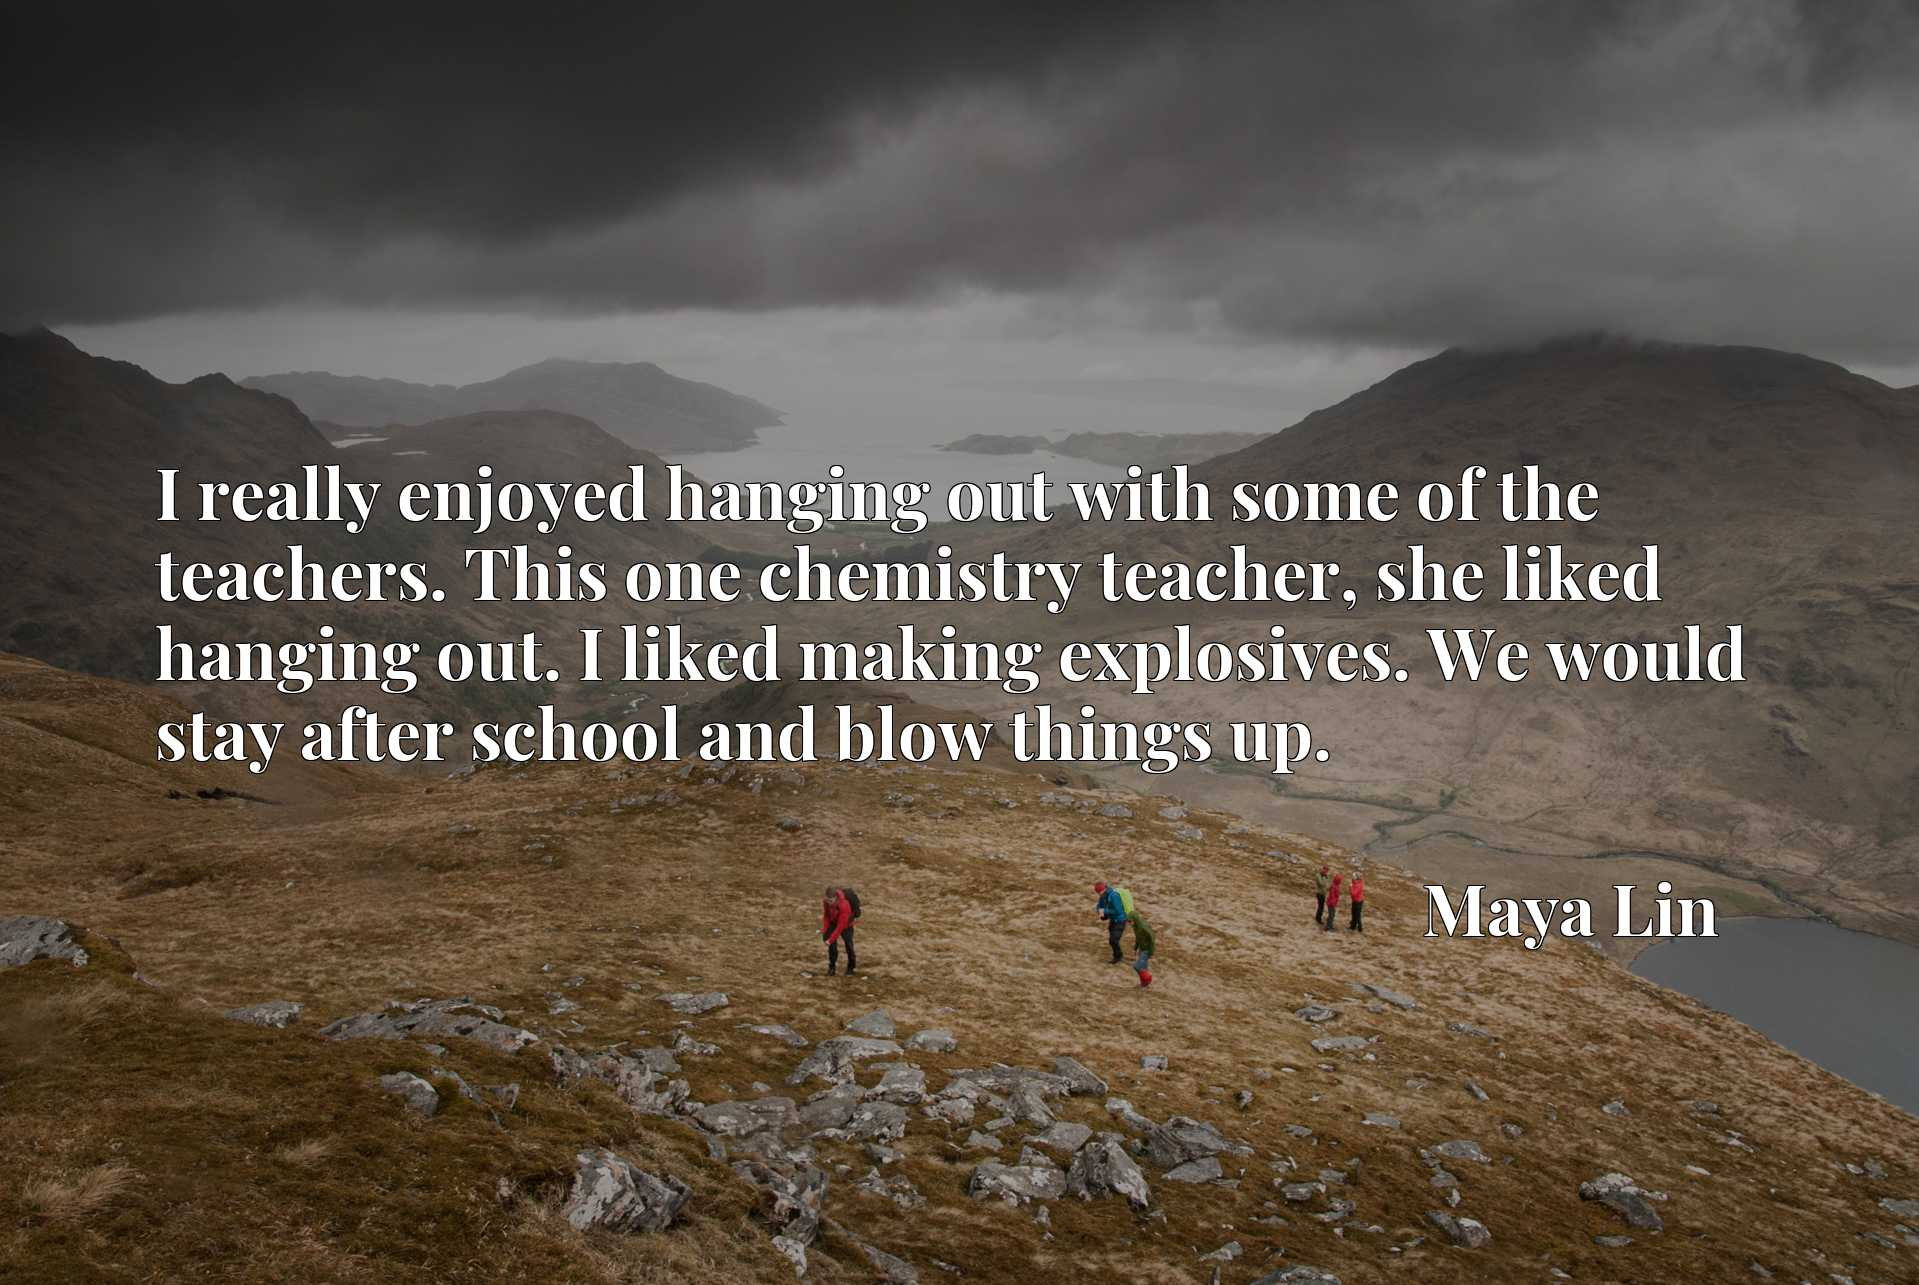 I really enjoyed hanging out with some of the teachers. This one chemistry teacher, she liked hanging out. I liked making explosives. We would stay after school and blow things up.